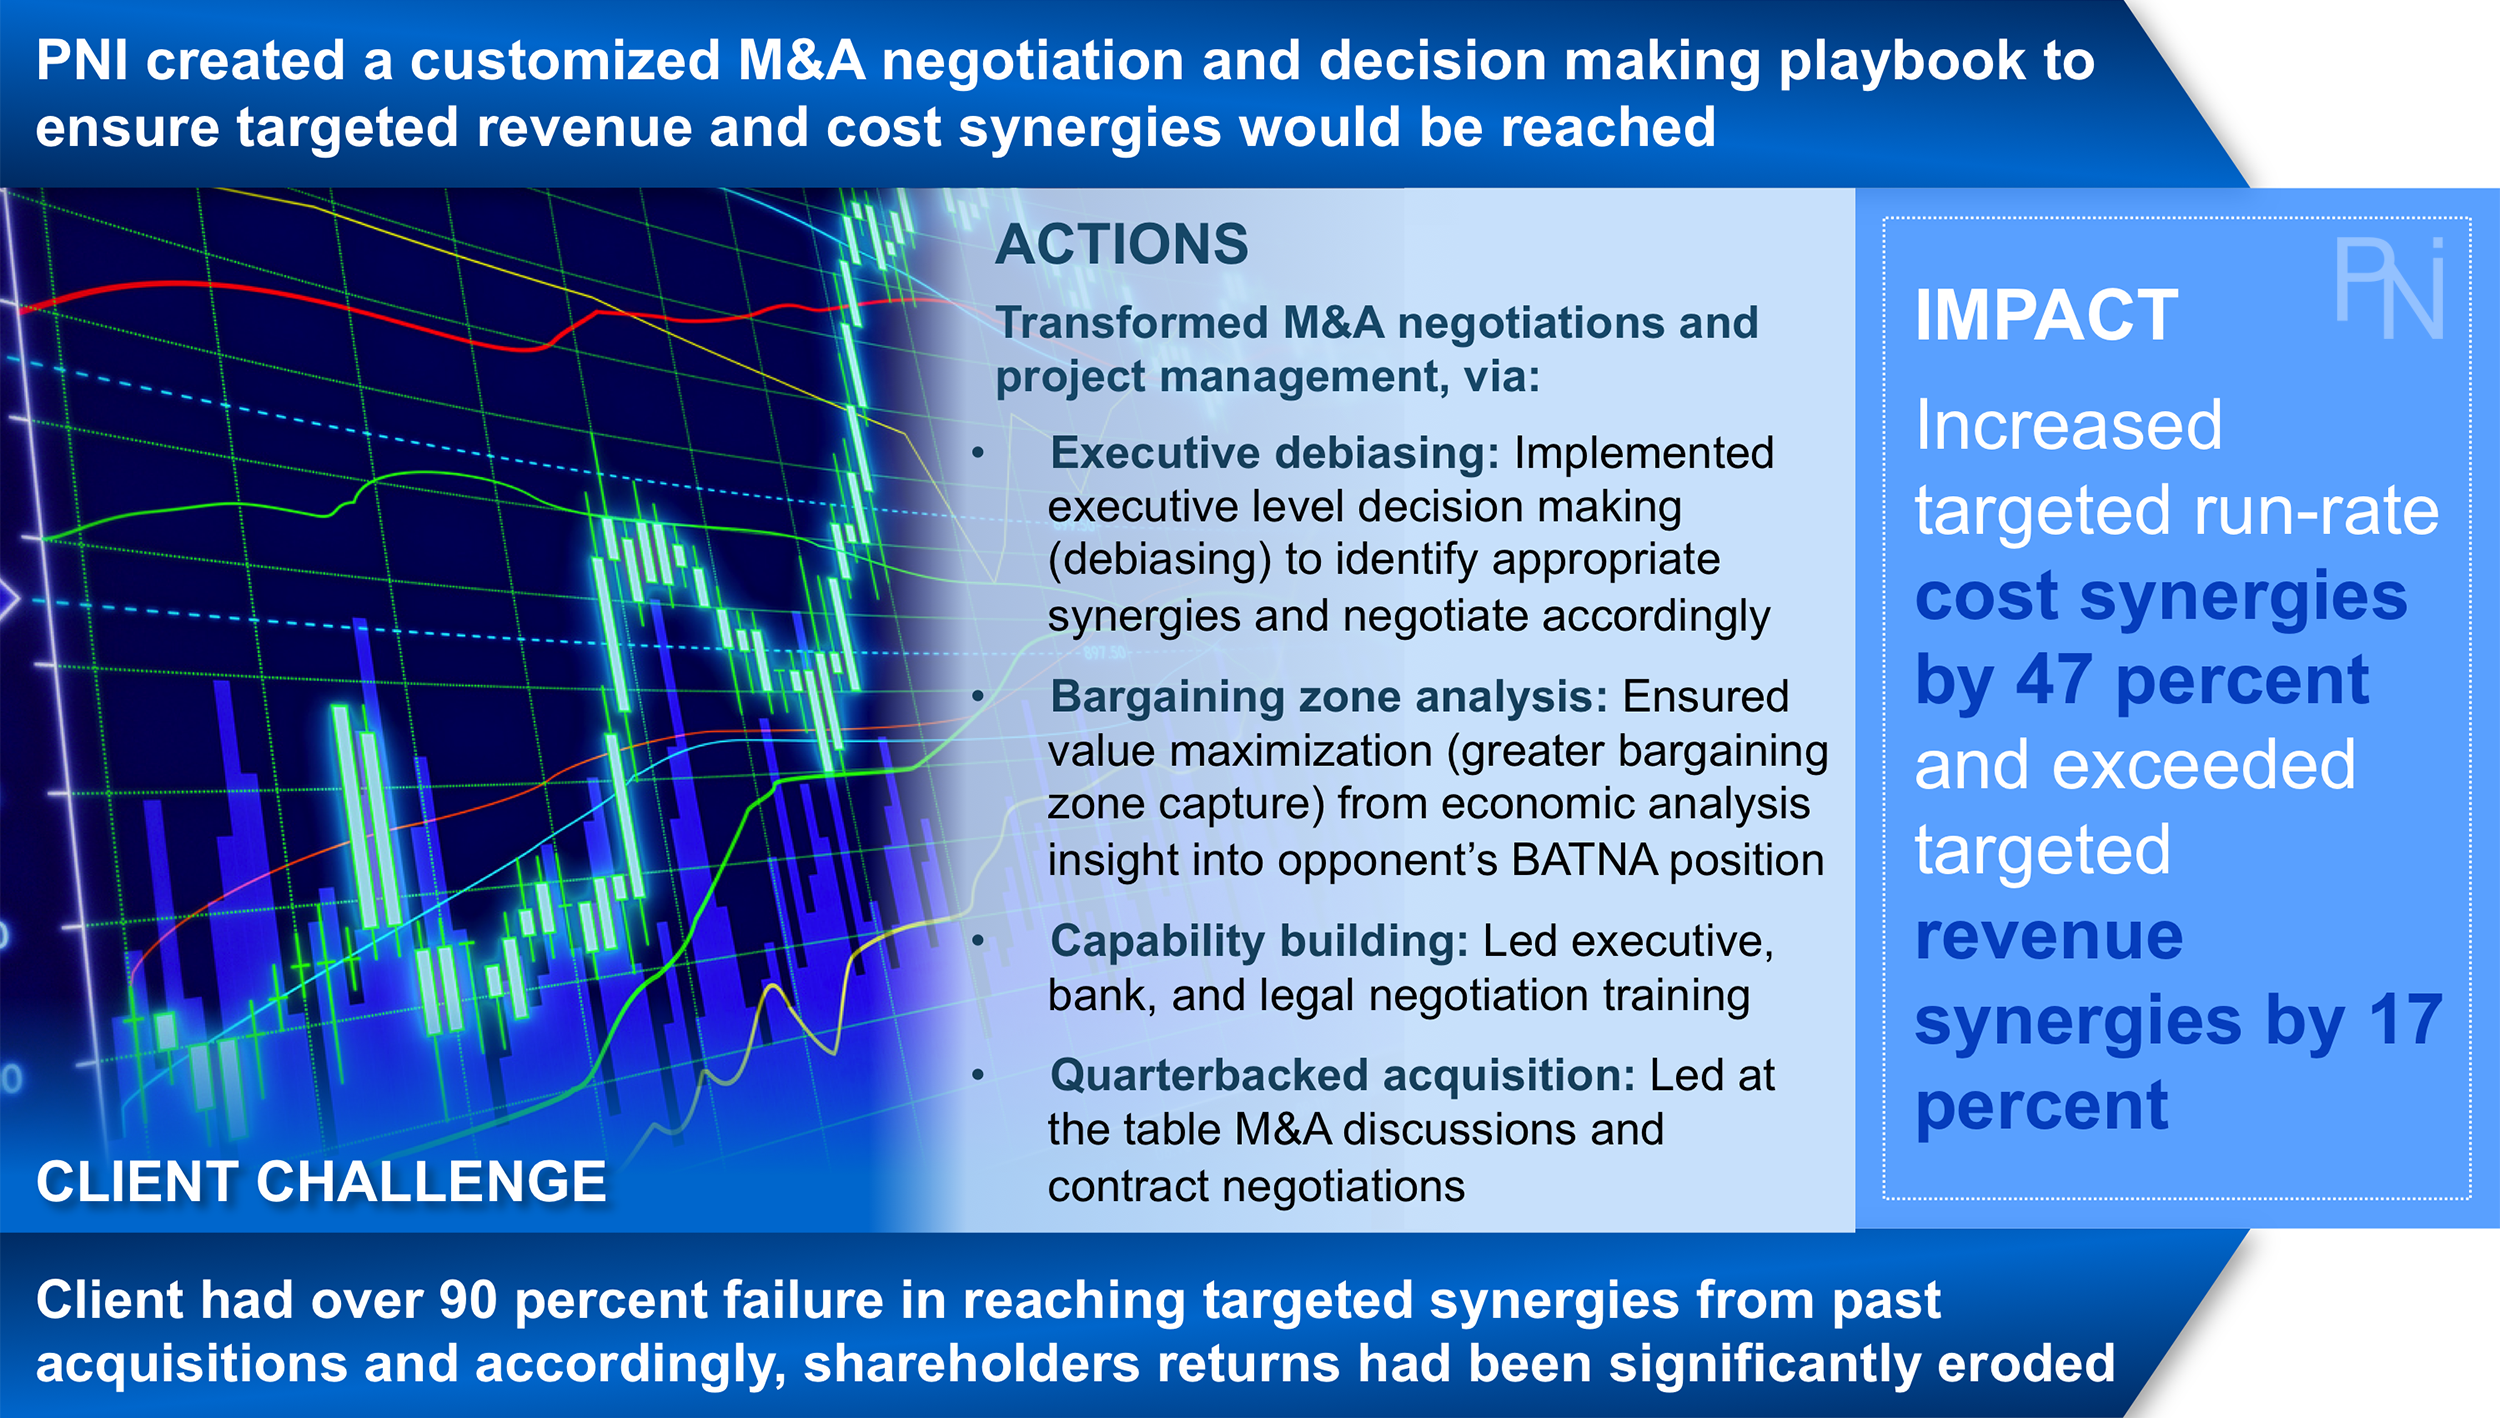 M&A Results 2 - PNI.png